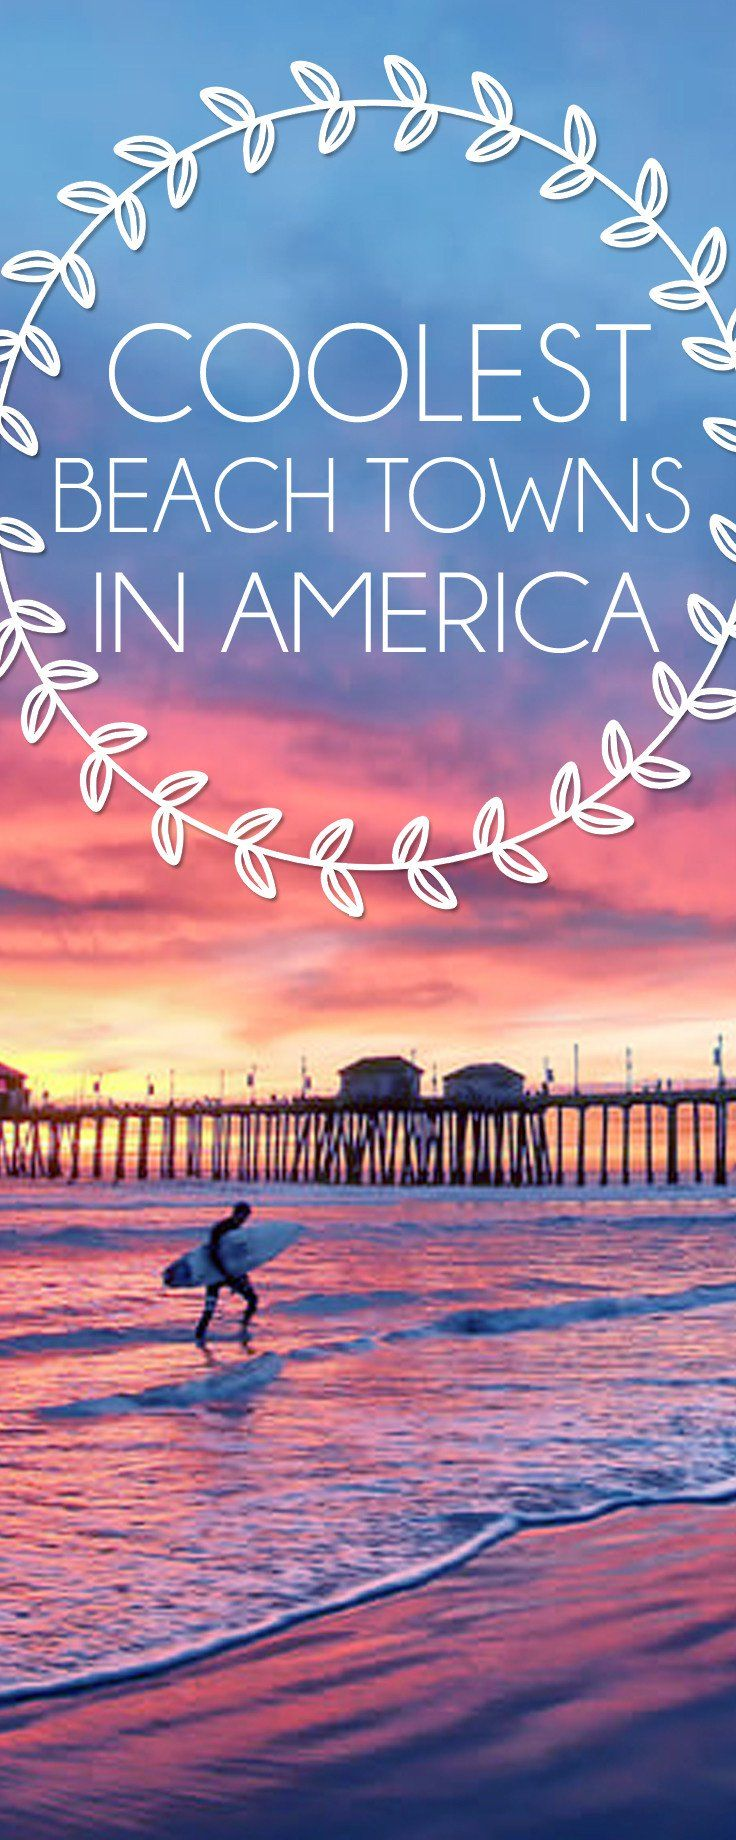 We've put together a list of some of the country's best beach towns, stretching from Atlantic to Pacific and plenty in between.